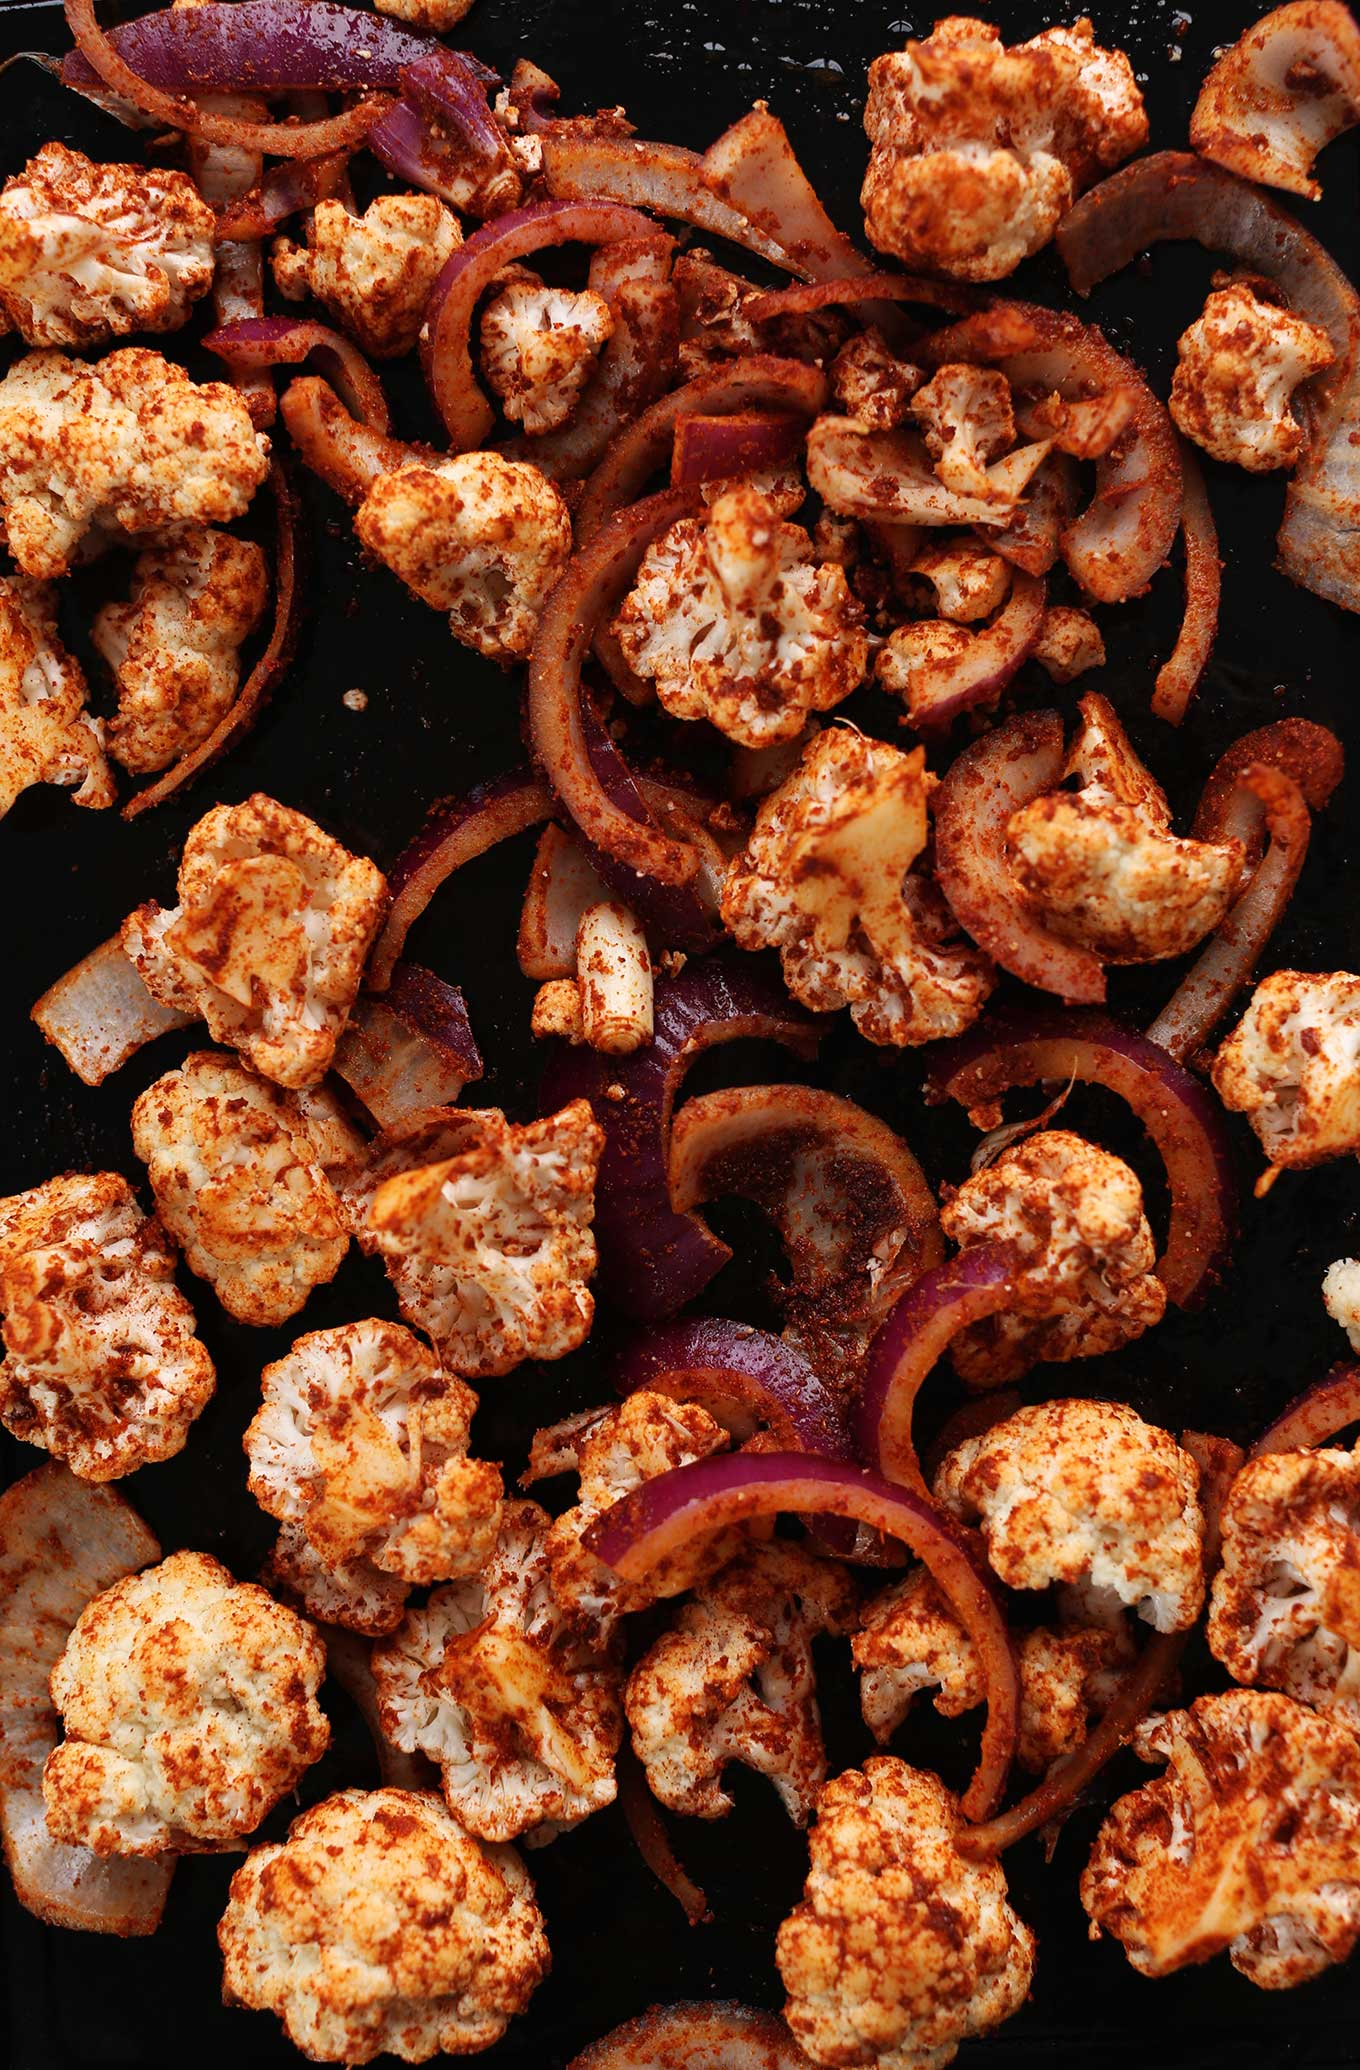 Baking sheet filled with cauliflower and red onions coated in masala spice blend